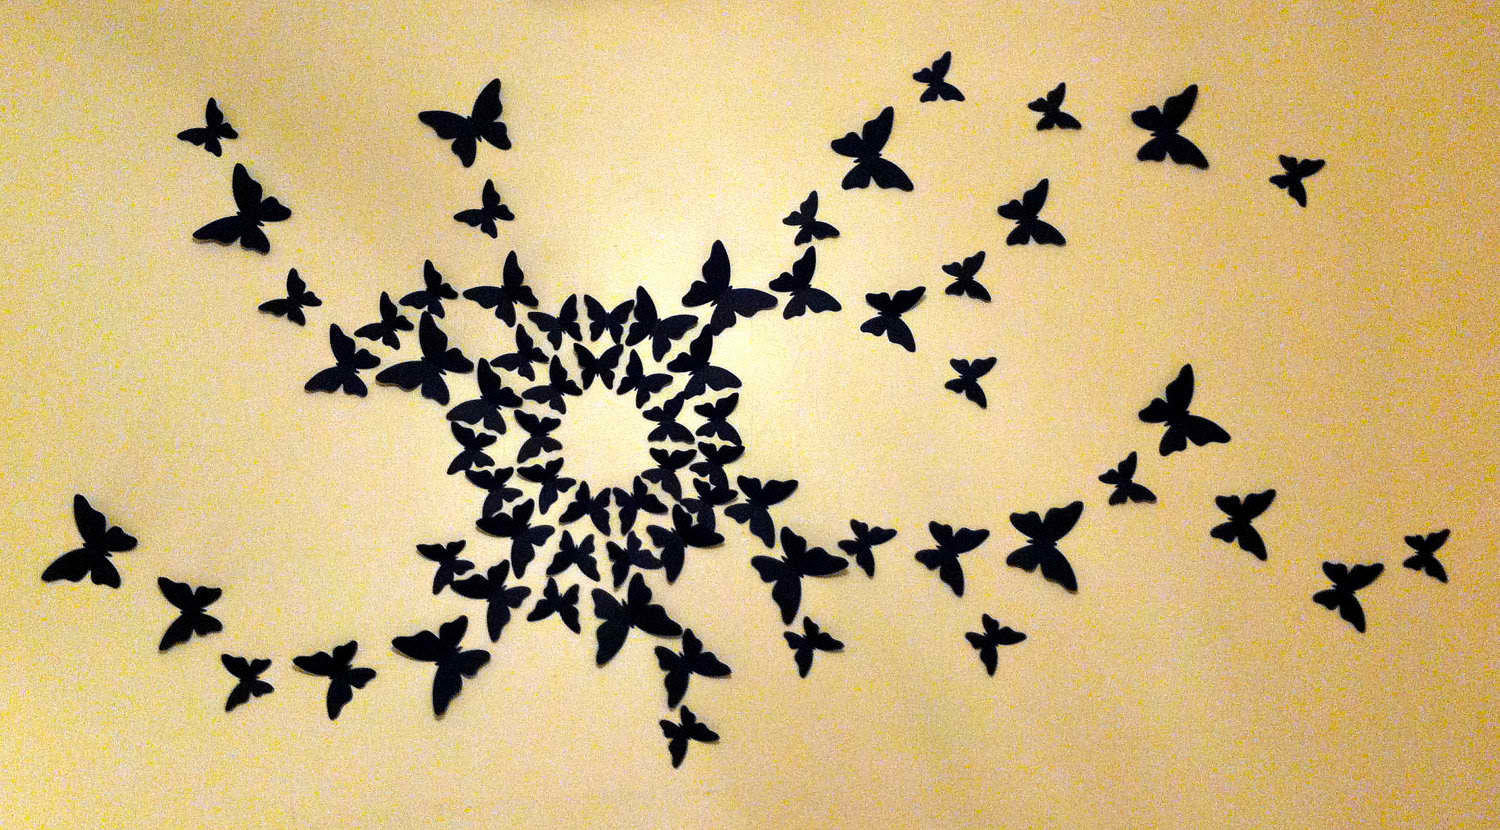 ... Butterfly wall decor Effect - goodworksfurniture. 1000+ ...